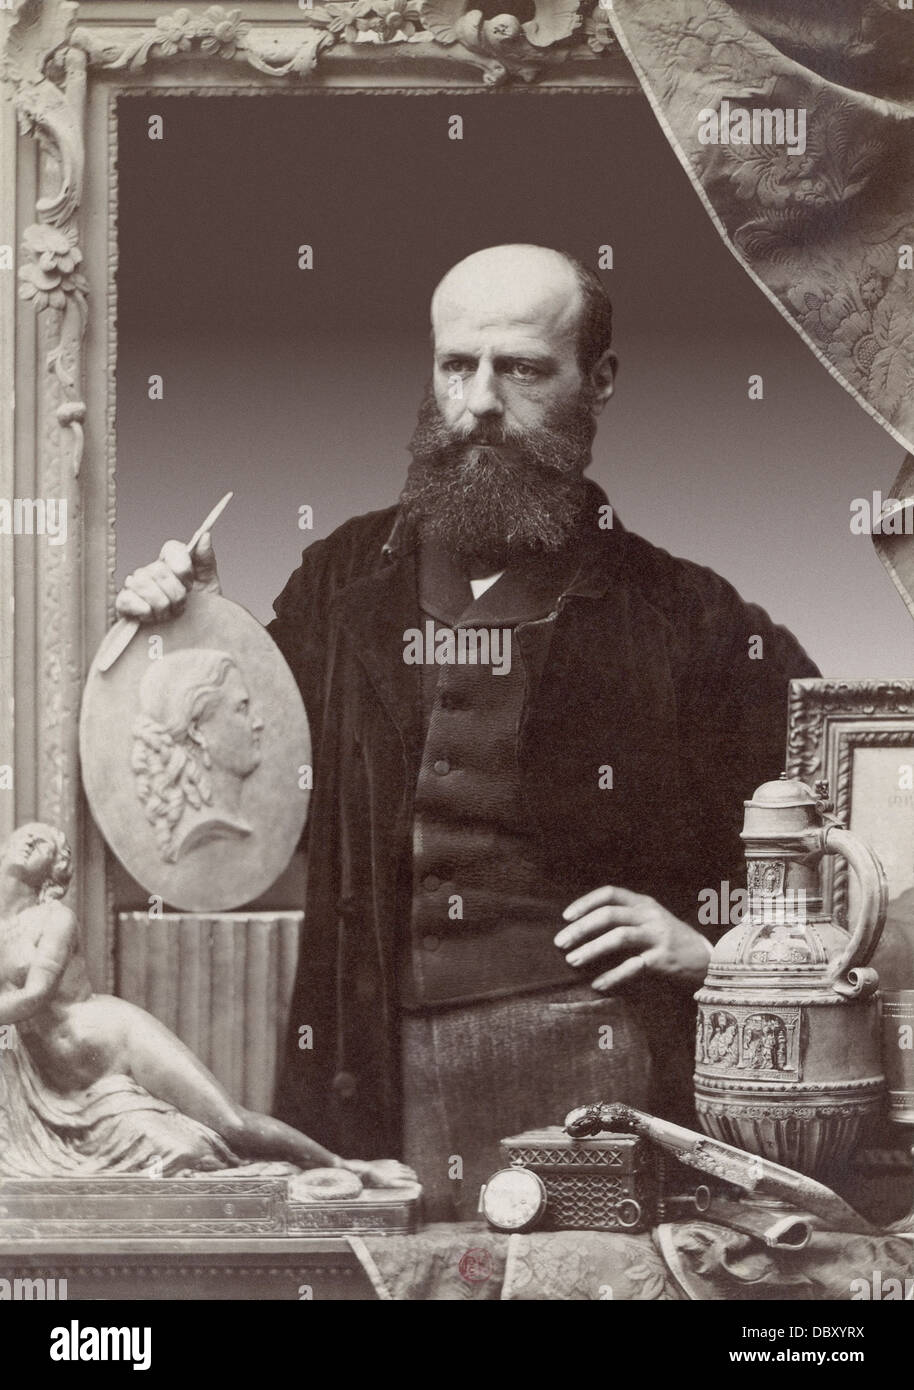 Mathieu-Meusnier (1824 - 1896), French sculptor and collector - Stock Image